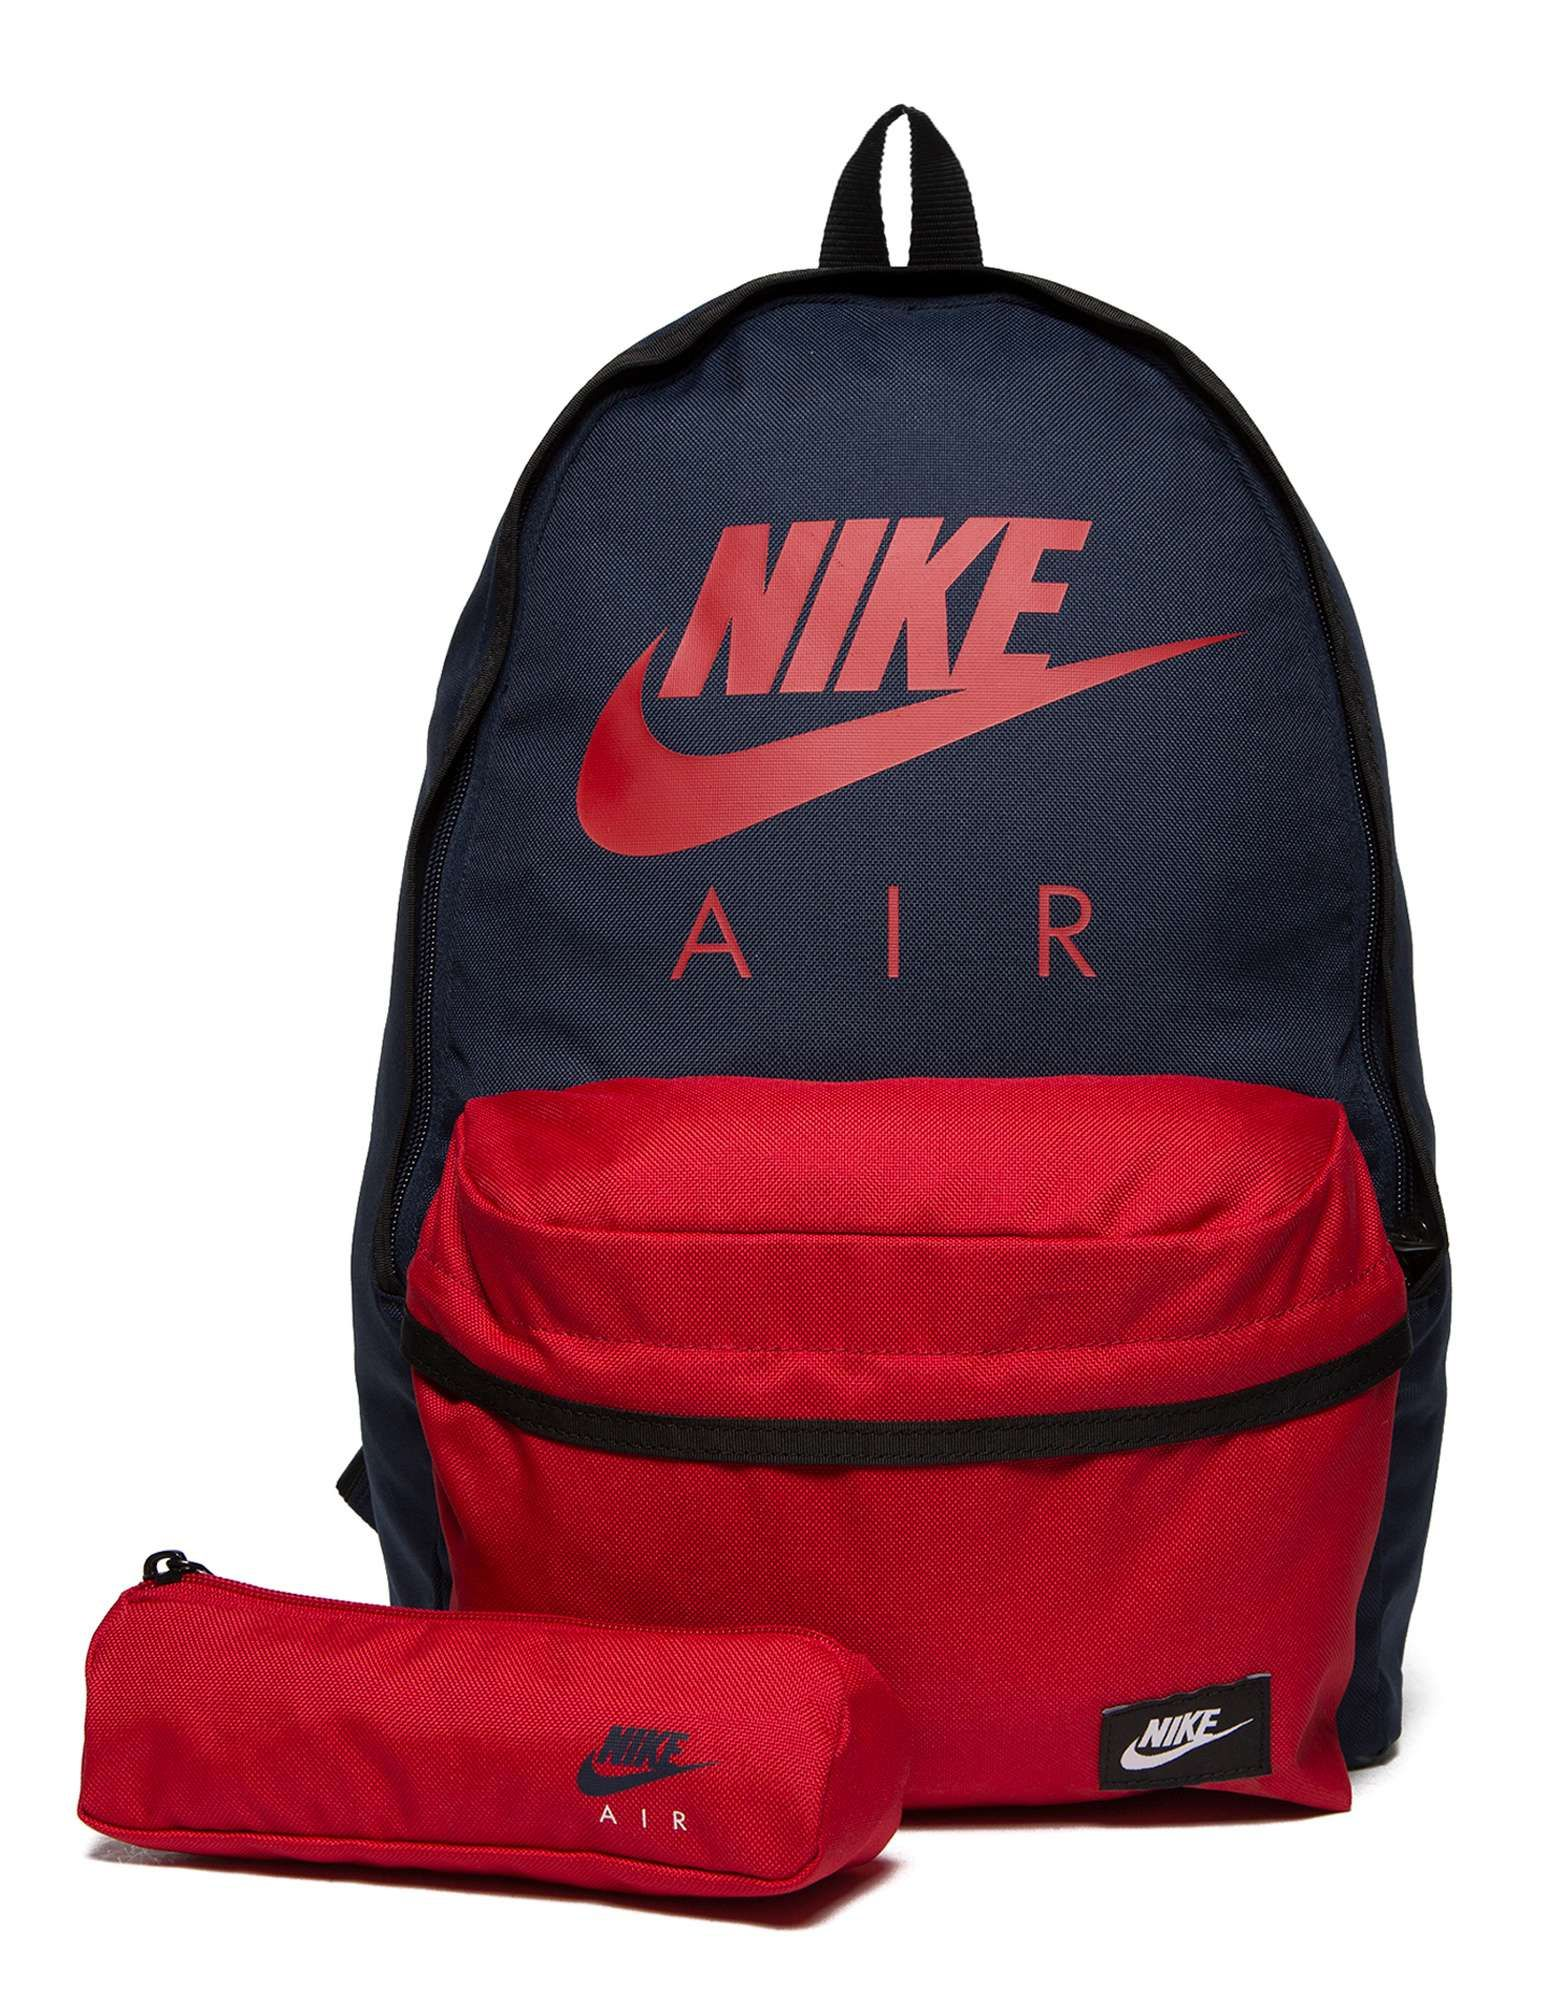 f16e0bce6d45 Nike Halfday Backpack - find out more on our site. Find the freshest in  trainers and clothing online now.